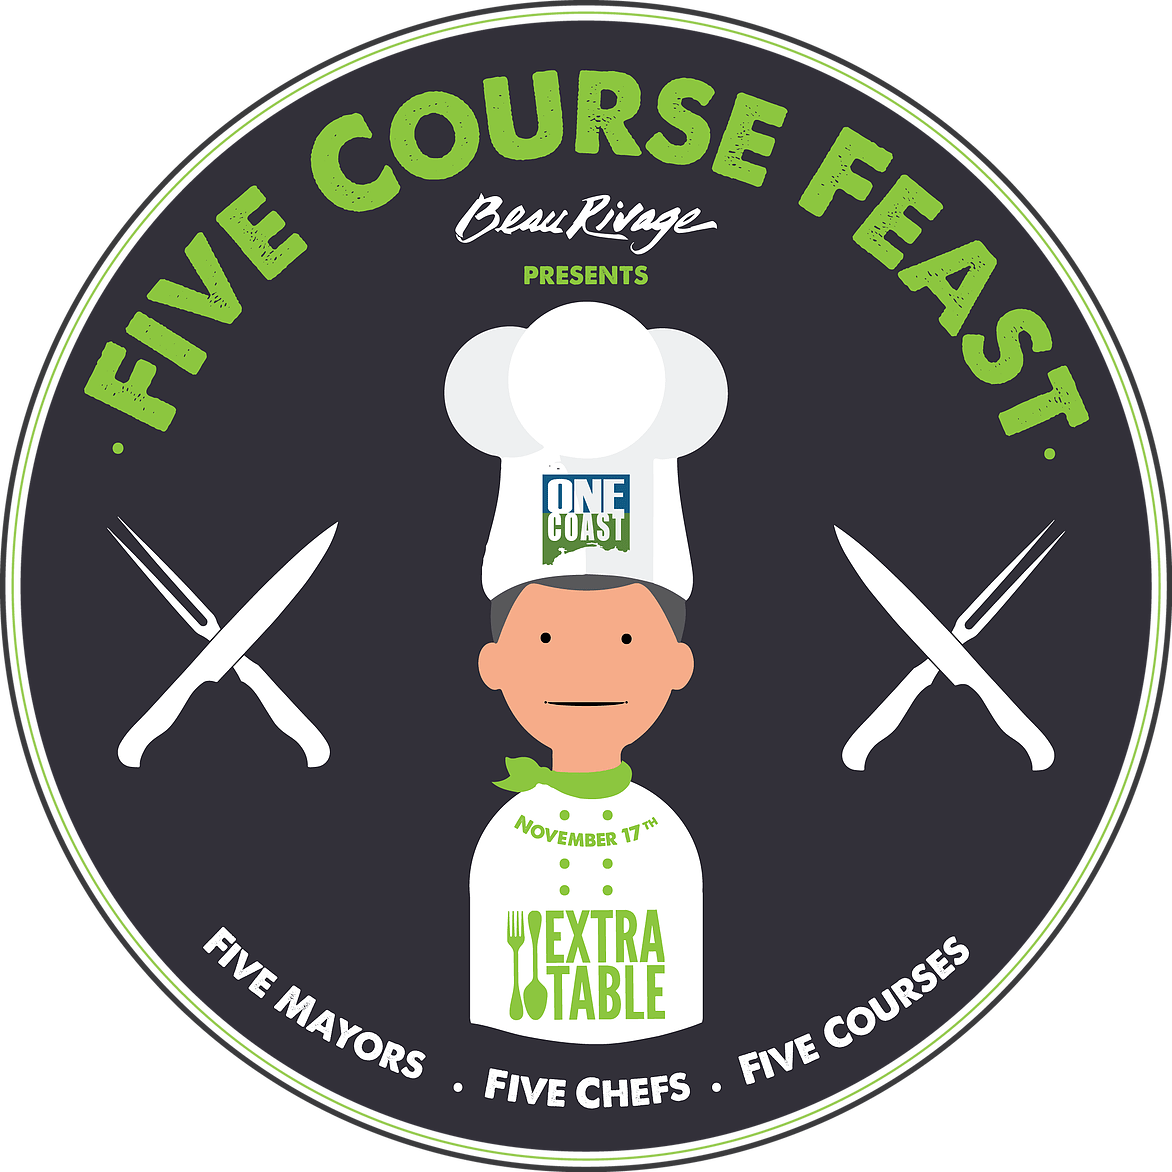 274ad7_6560897e71764fedb0e58e75828531bamv2_d_2210_2210_s_2 Local Mayors, Chefs to Participate in Five Course Feast for Charity